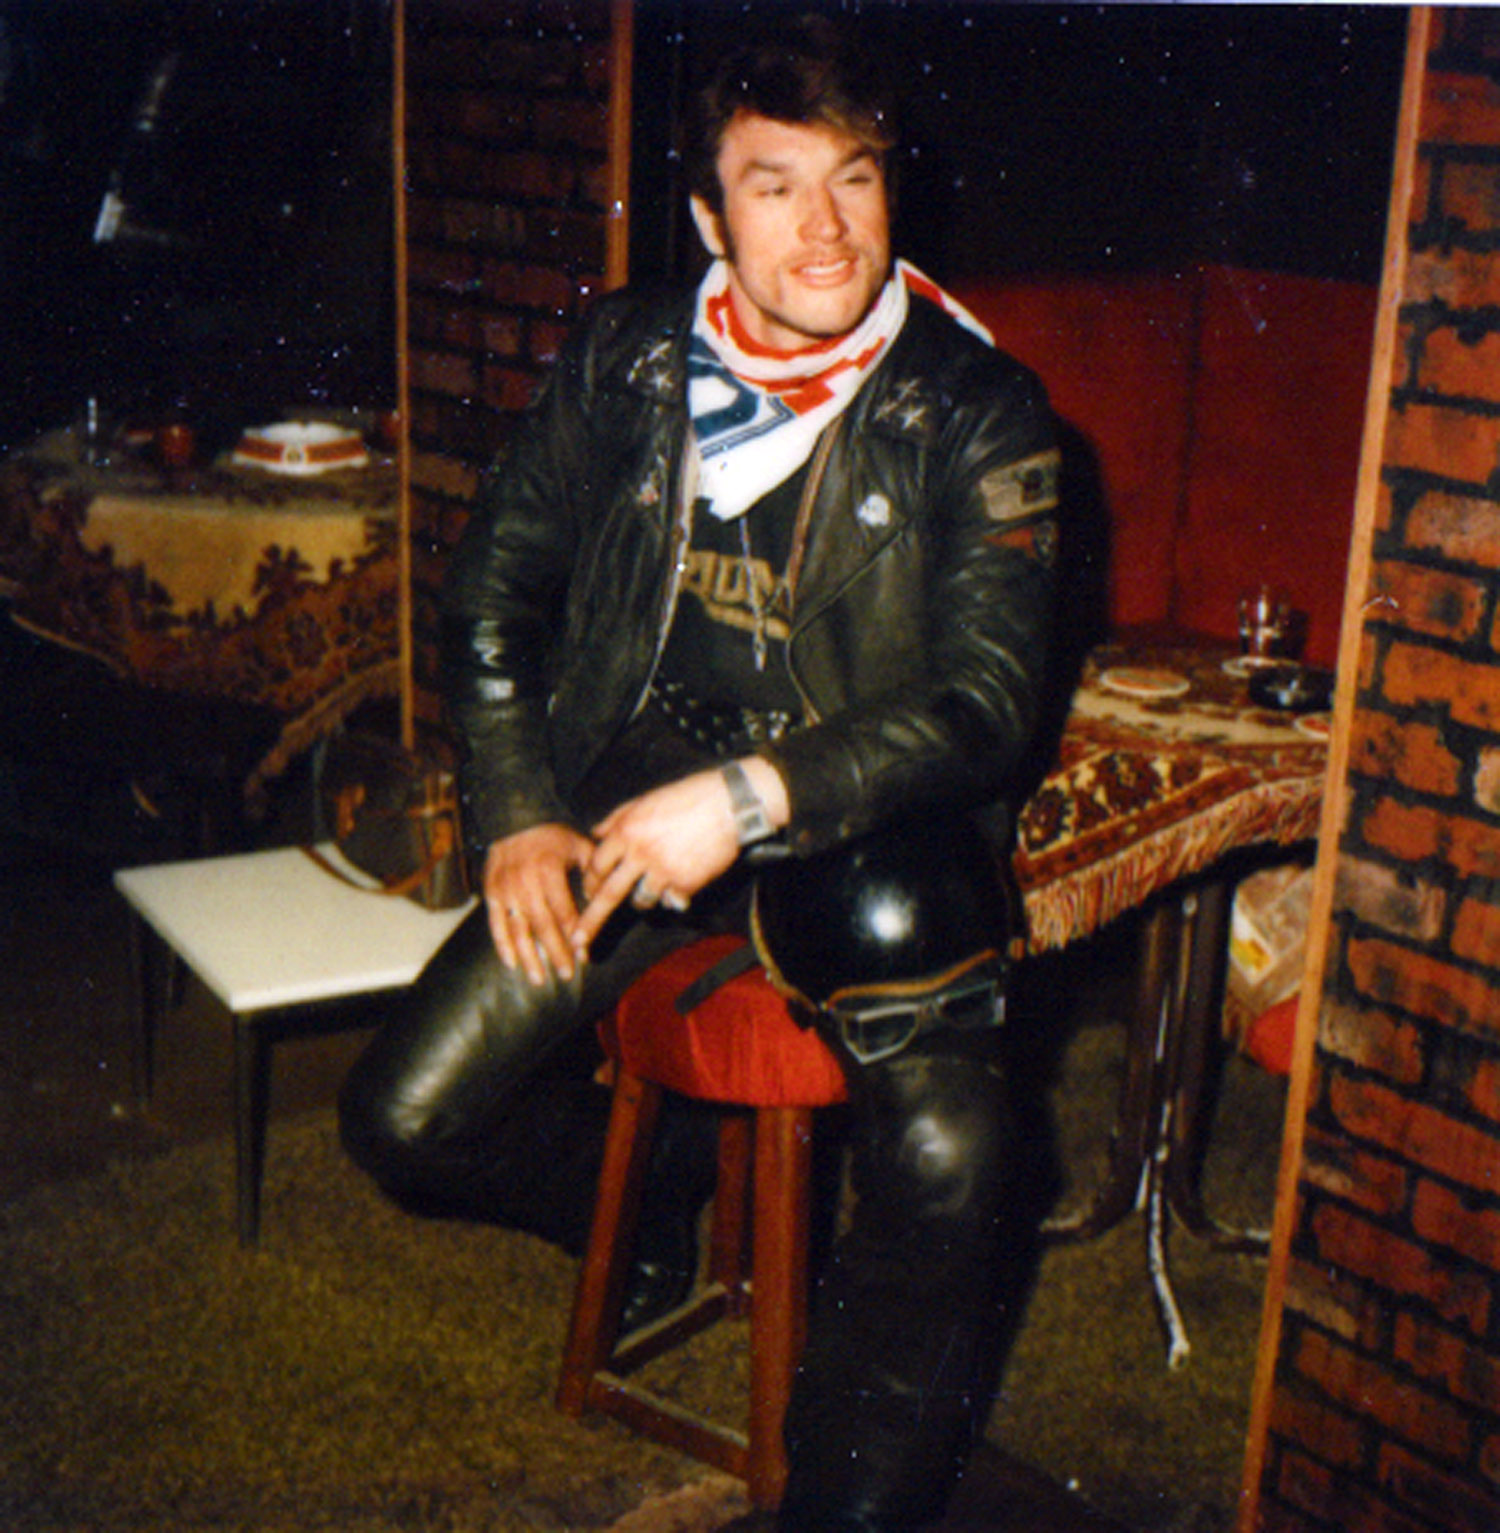 A biker from Germany